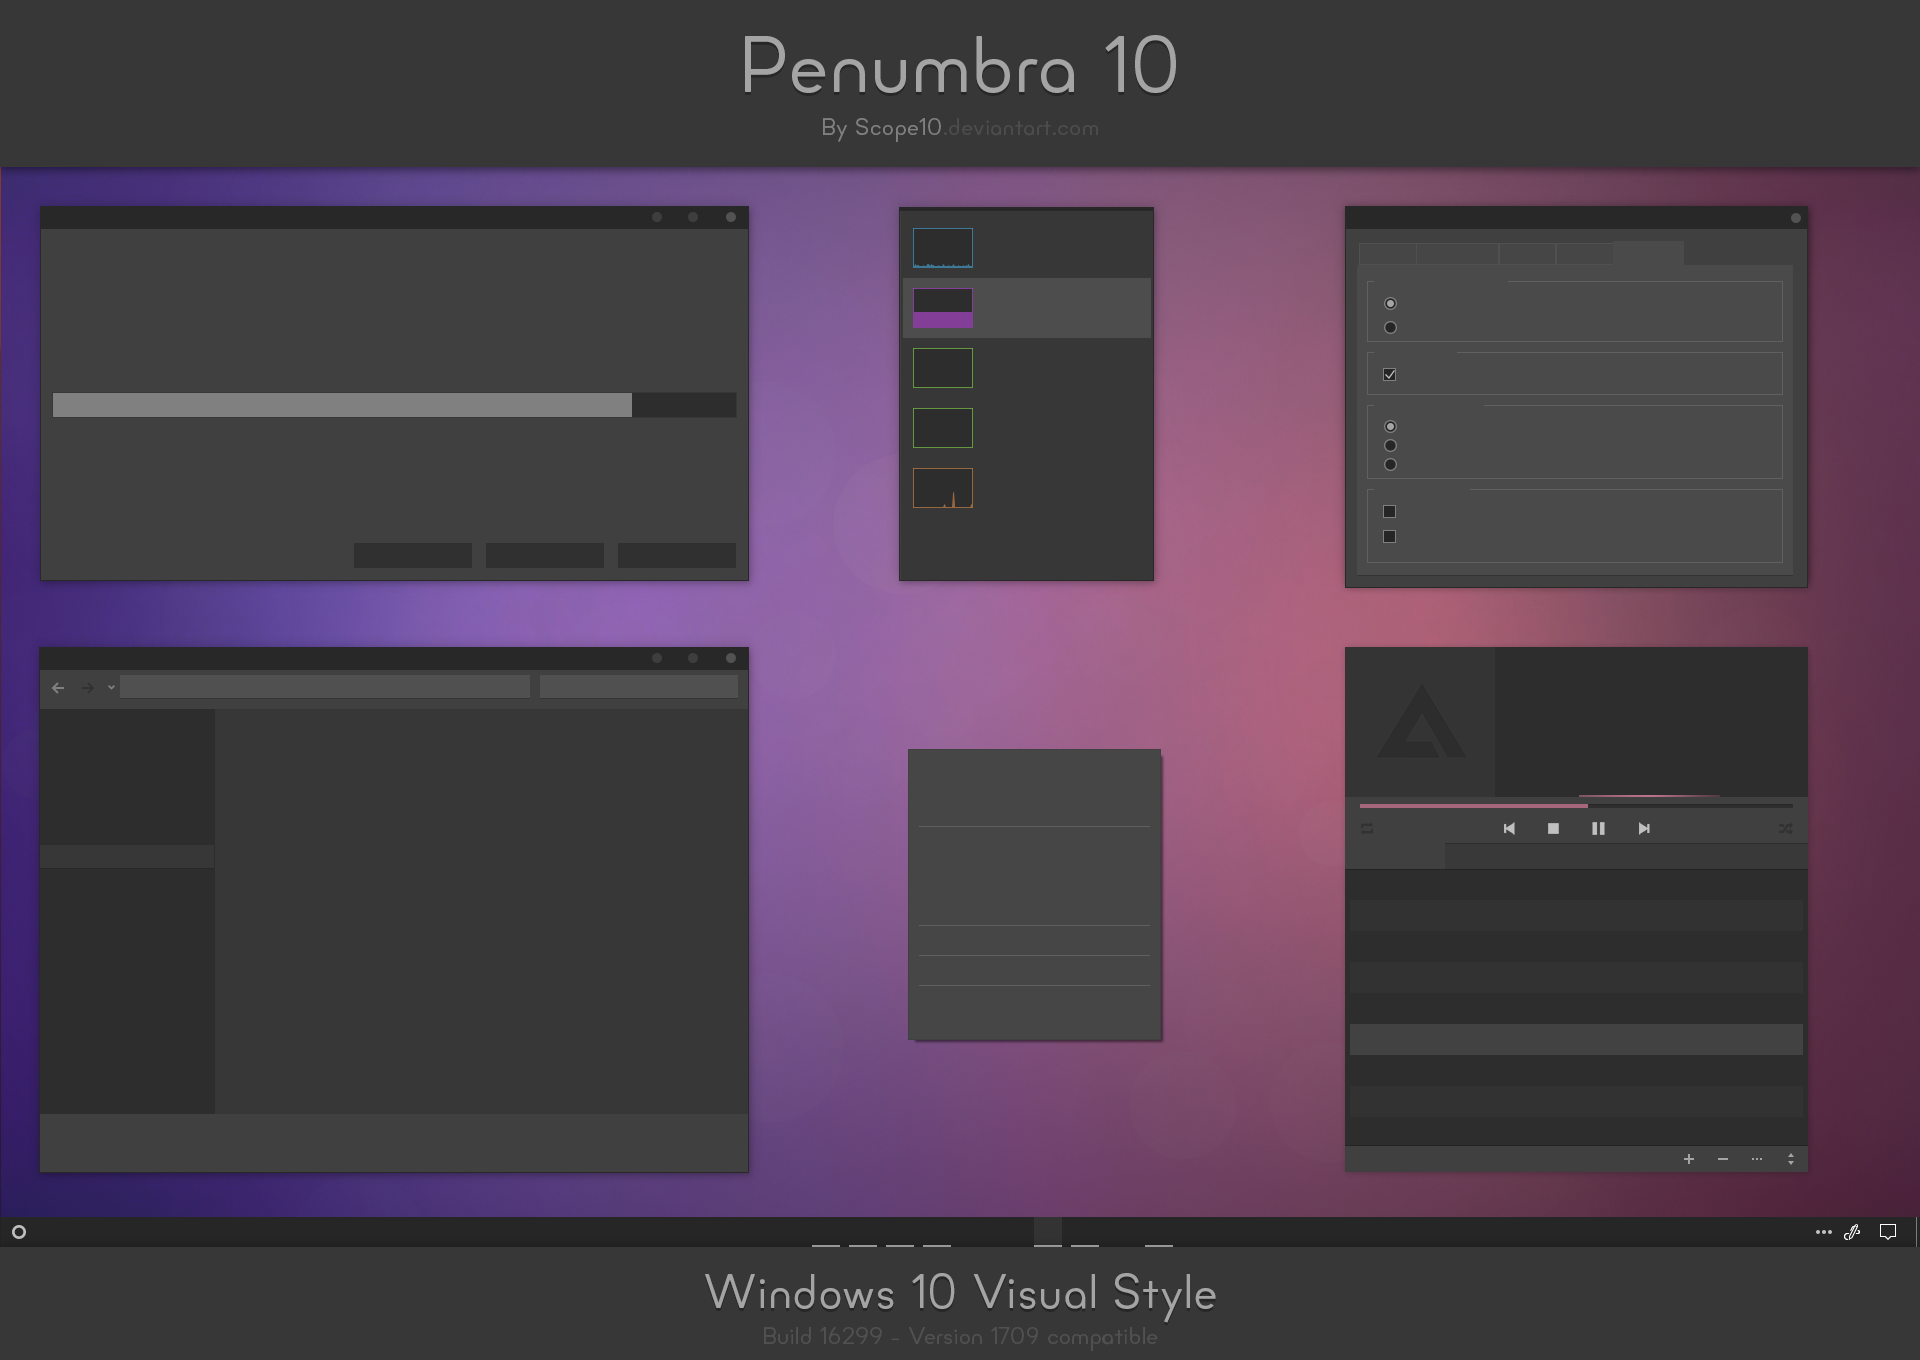 Penumbra 10 - Windows 10 visual style by Scope10 on DeviantArt